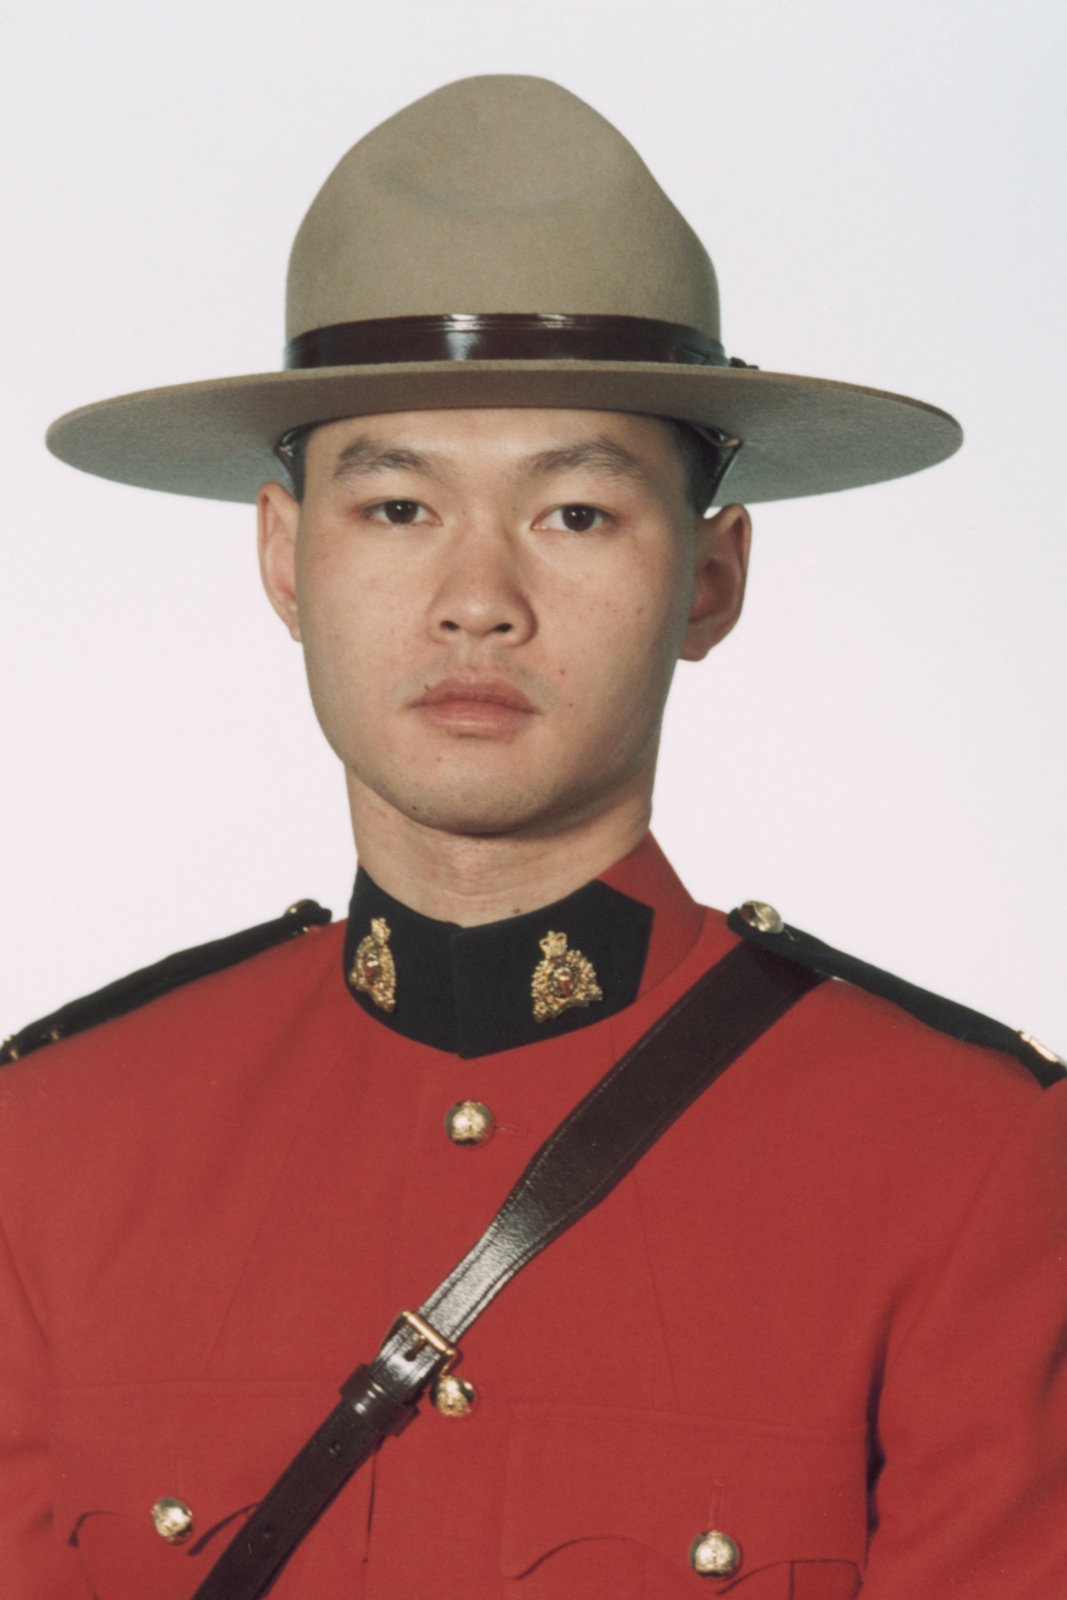 Constable Jimmy Ng – © Her Majesty the Queen in Right of Canada as represented by the Royal Canadian Mounted Police